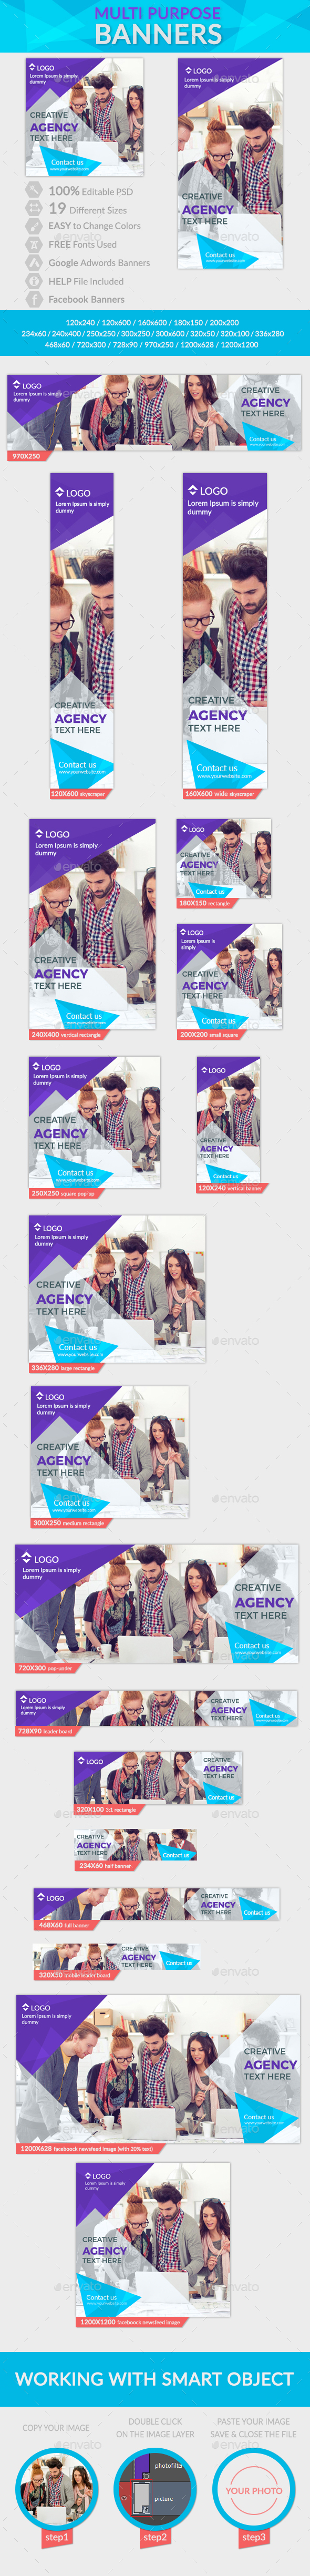 Multi Purpose Banners + 2 Facebook Banners - Banners & Ads Web Elements